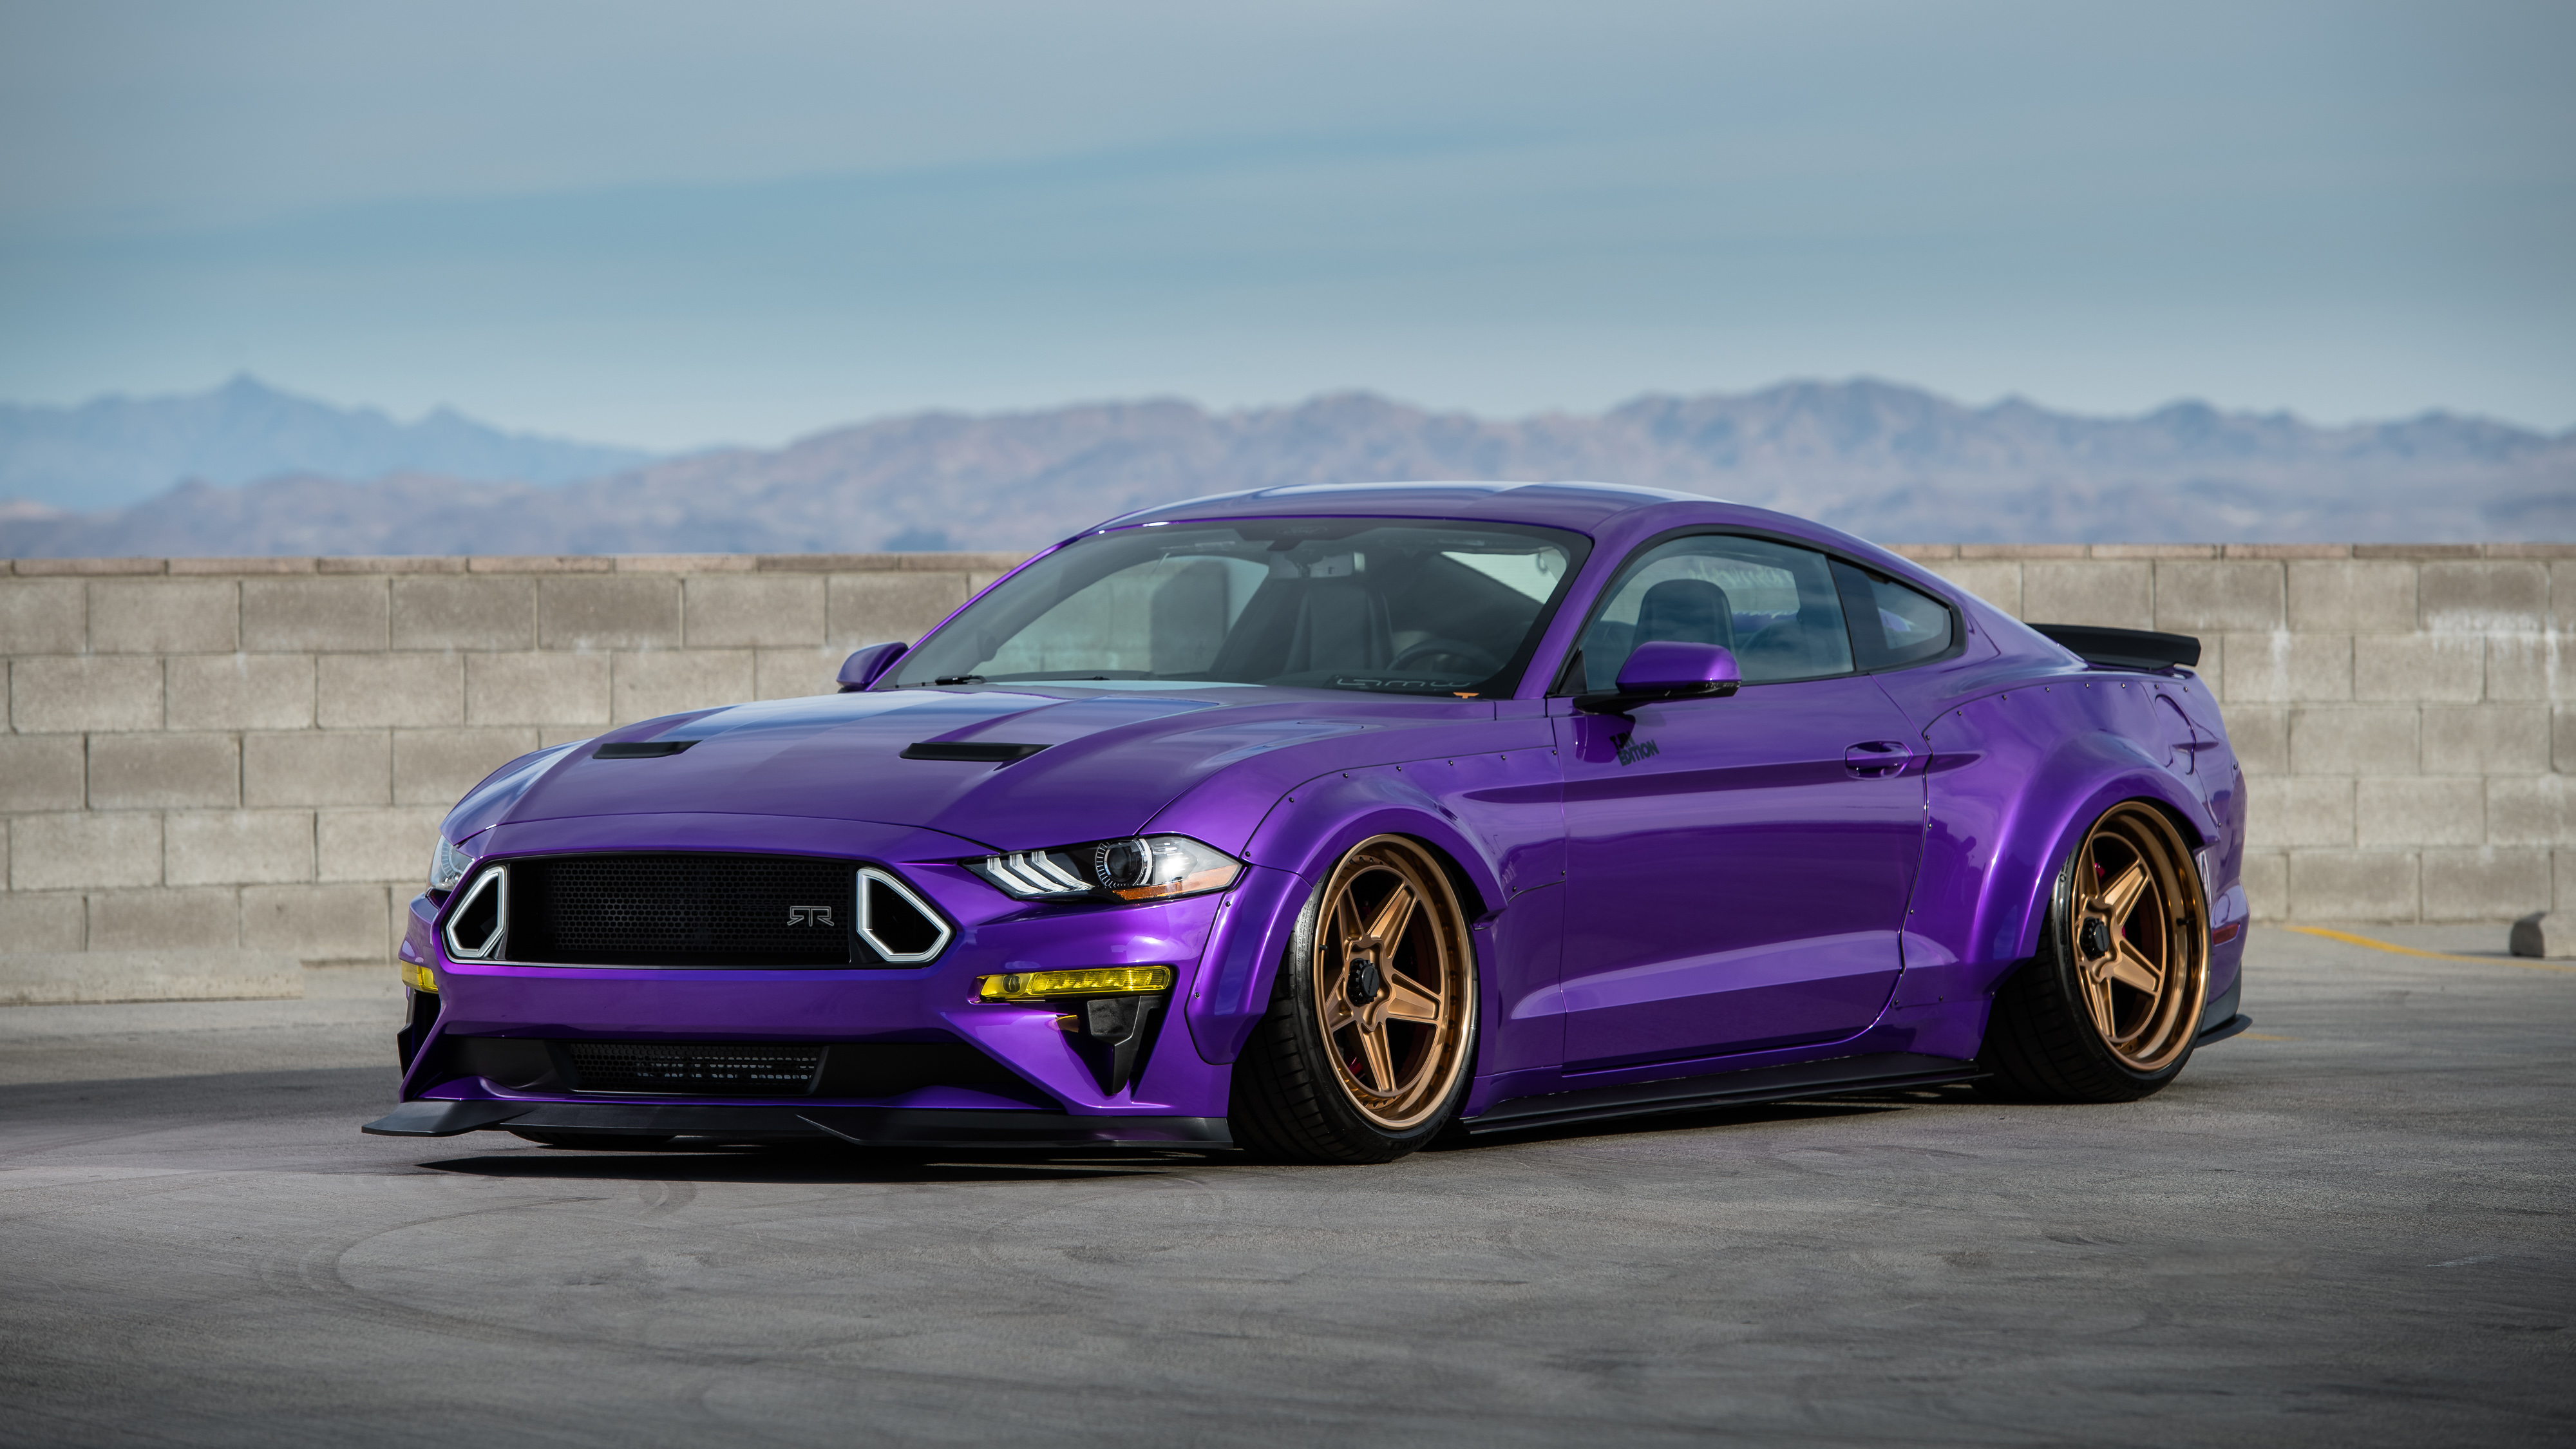 TJIN Edition Ford Mustang EcoBoost 2018 4K Wallpaper | HD ...